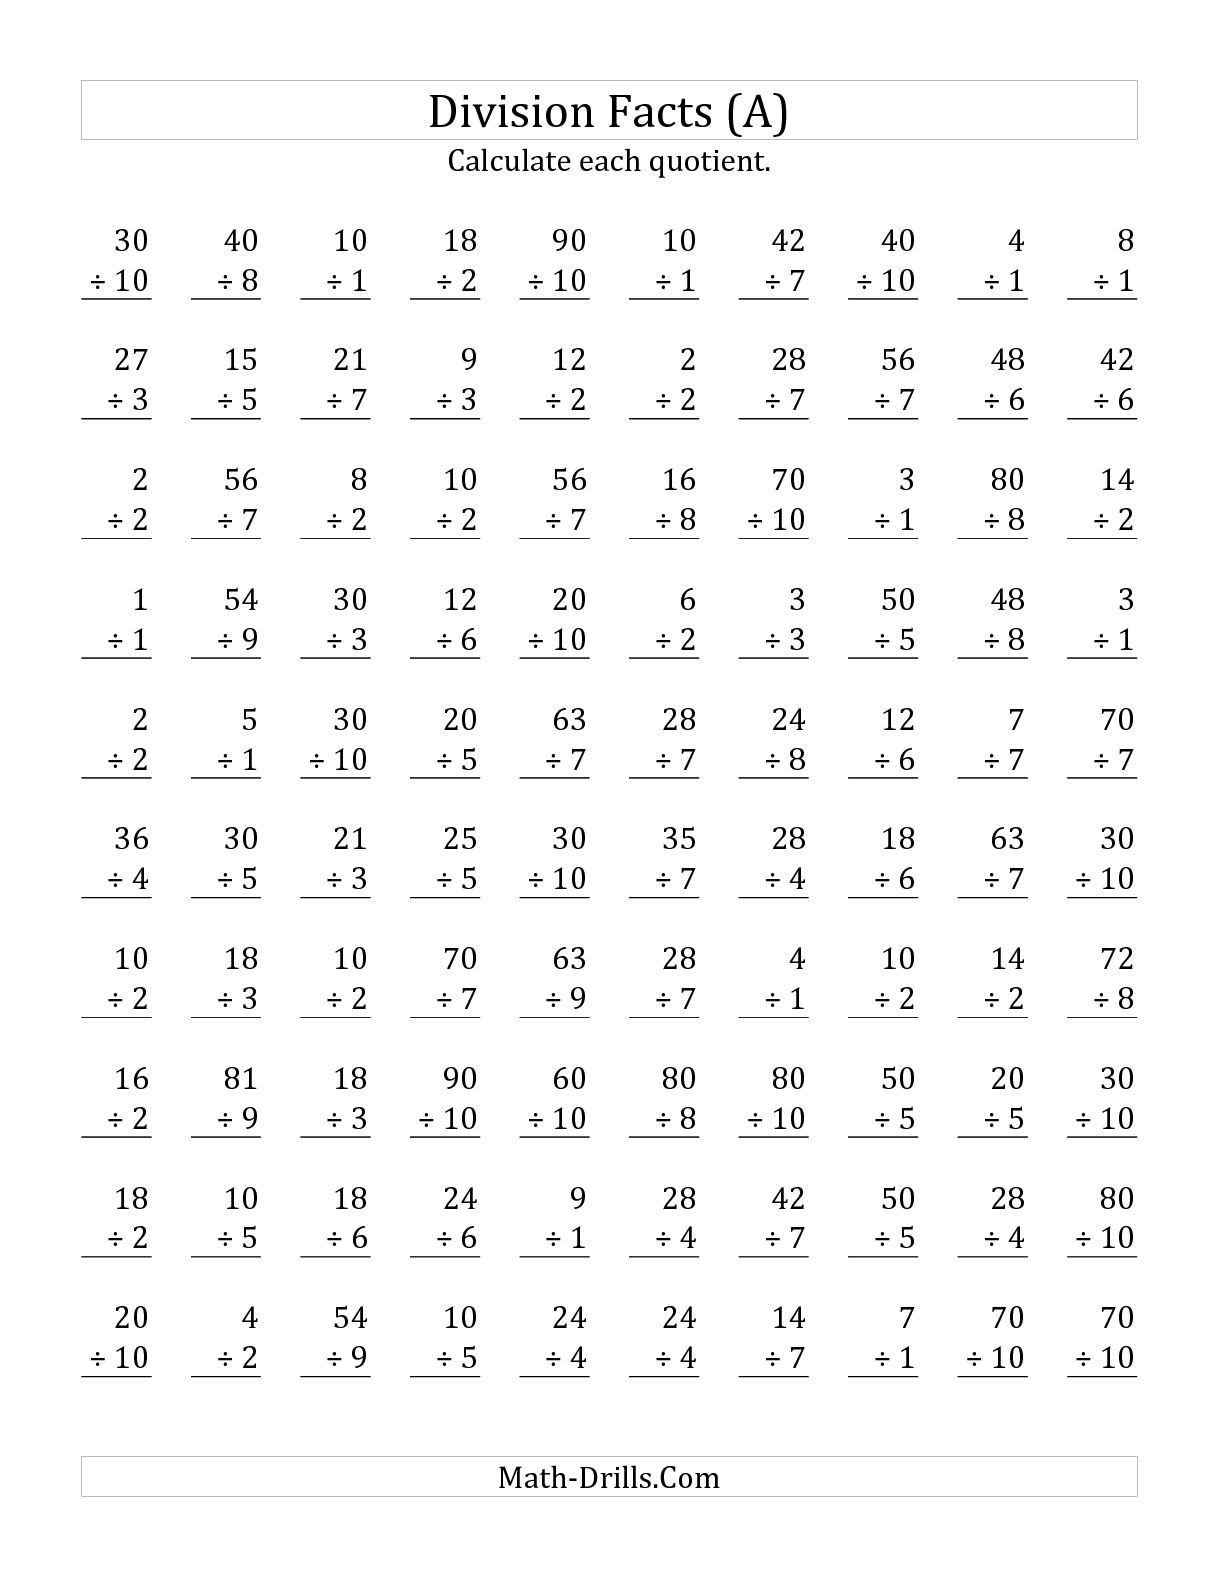 Basic Division Fact Worksheets the Vertically Arranged Division Facts to 100 A Math